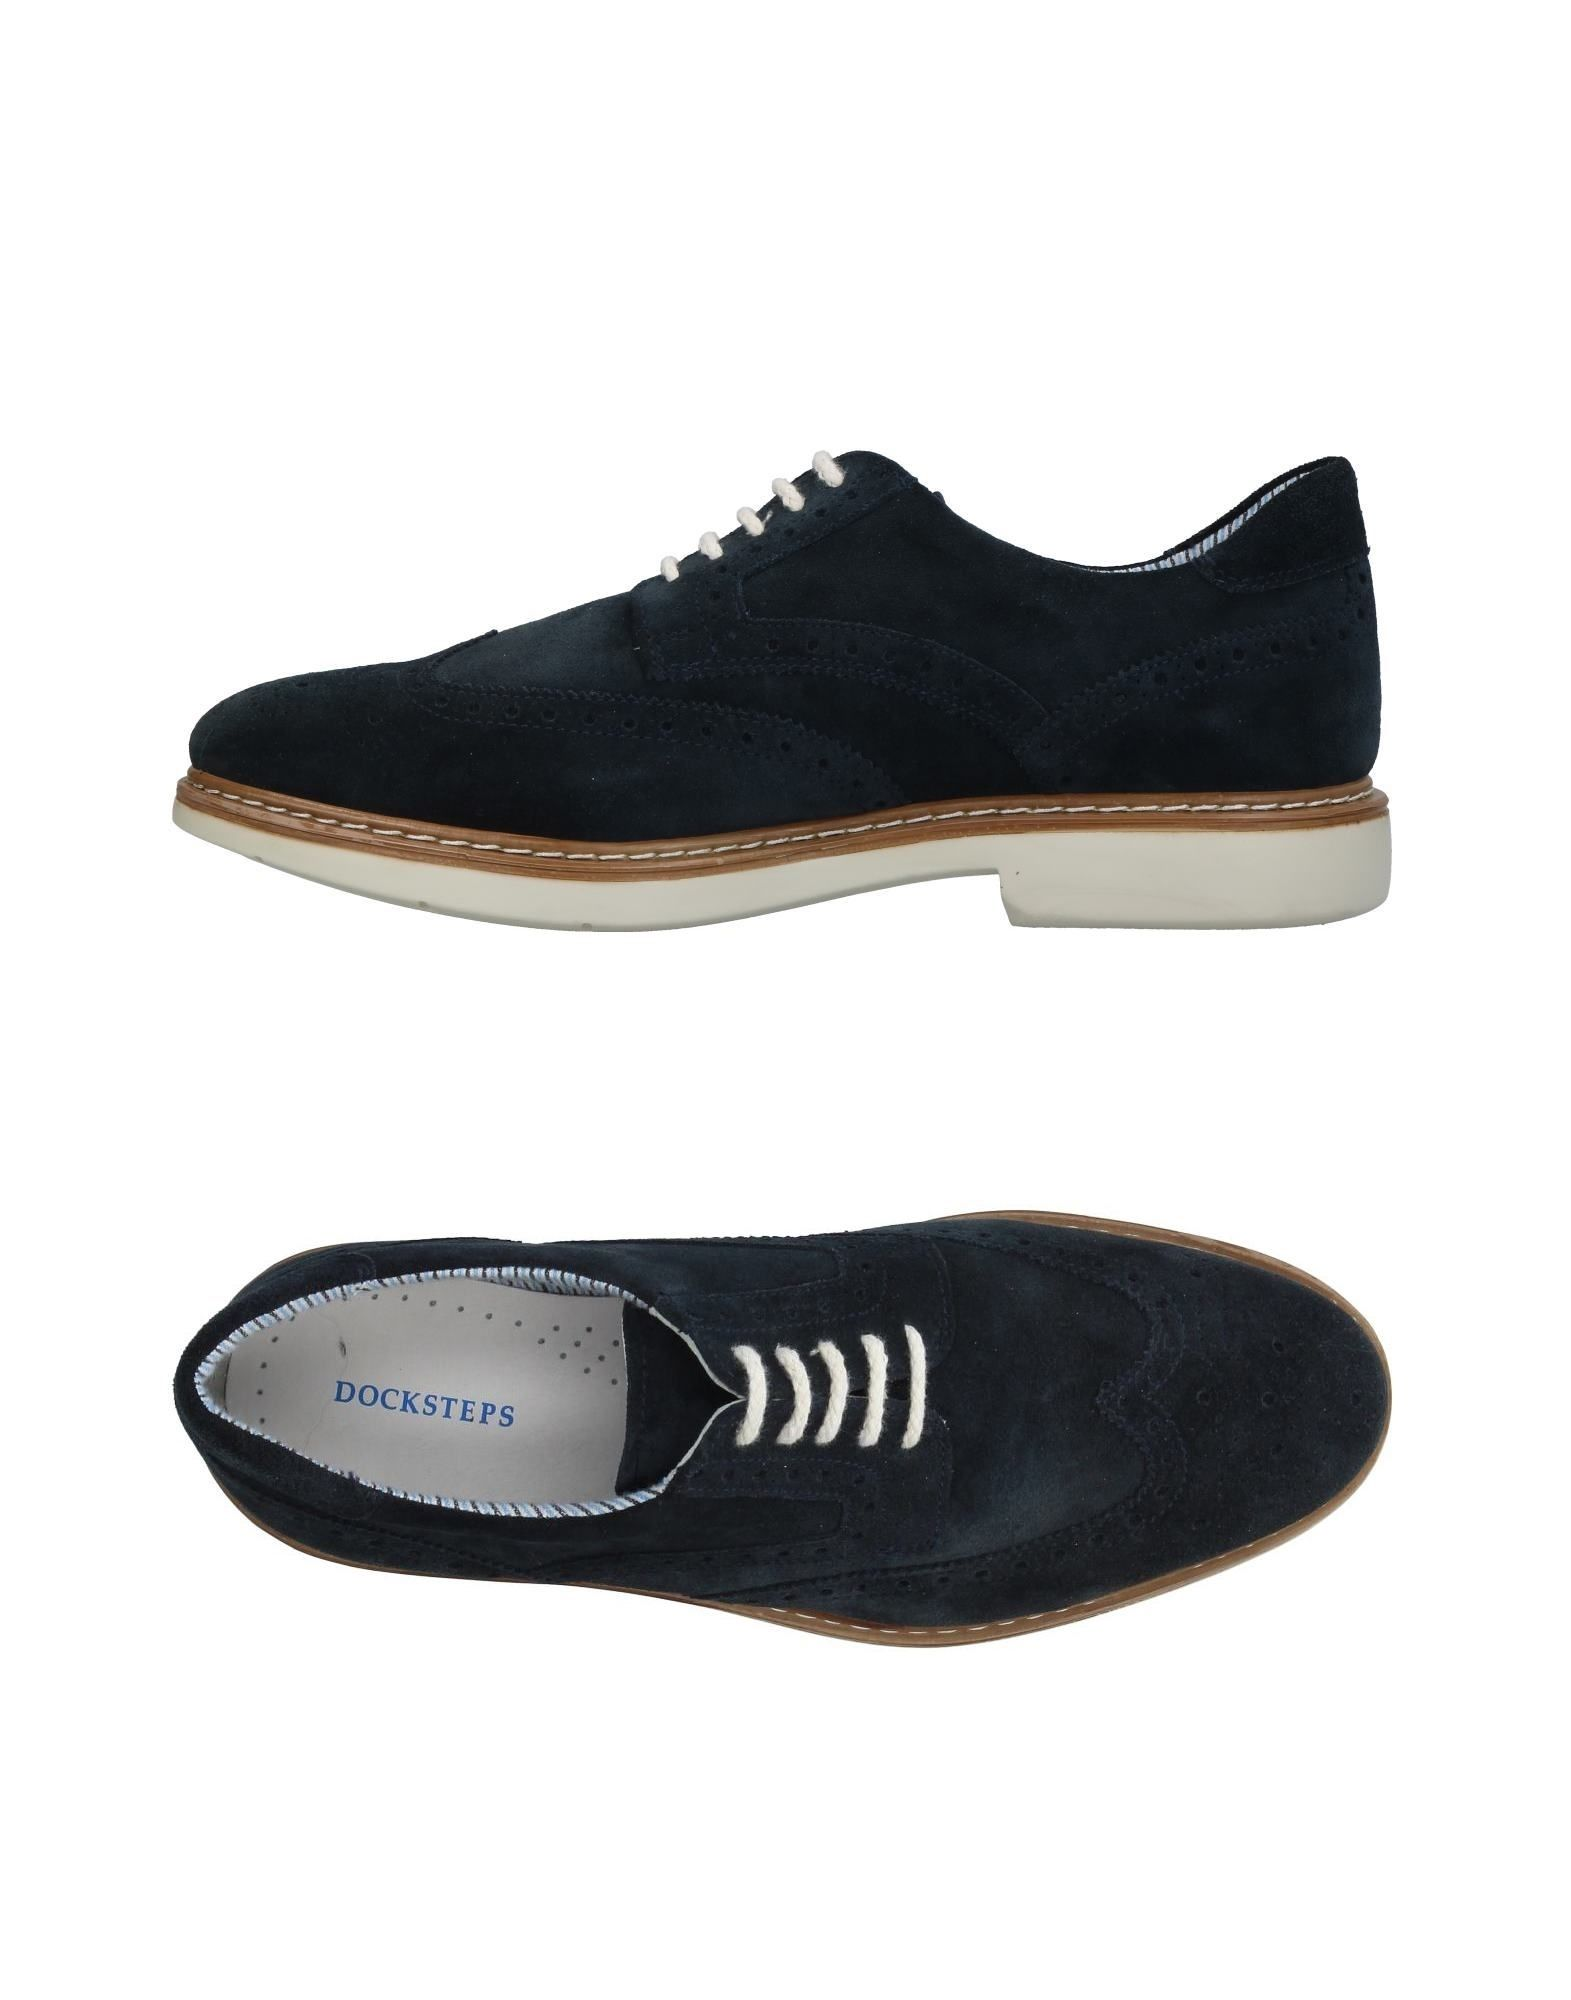 Chaussures - Chaussures À Lacets Docksteps mBZ1wTo